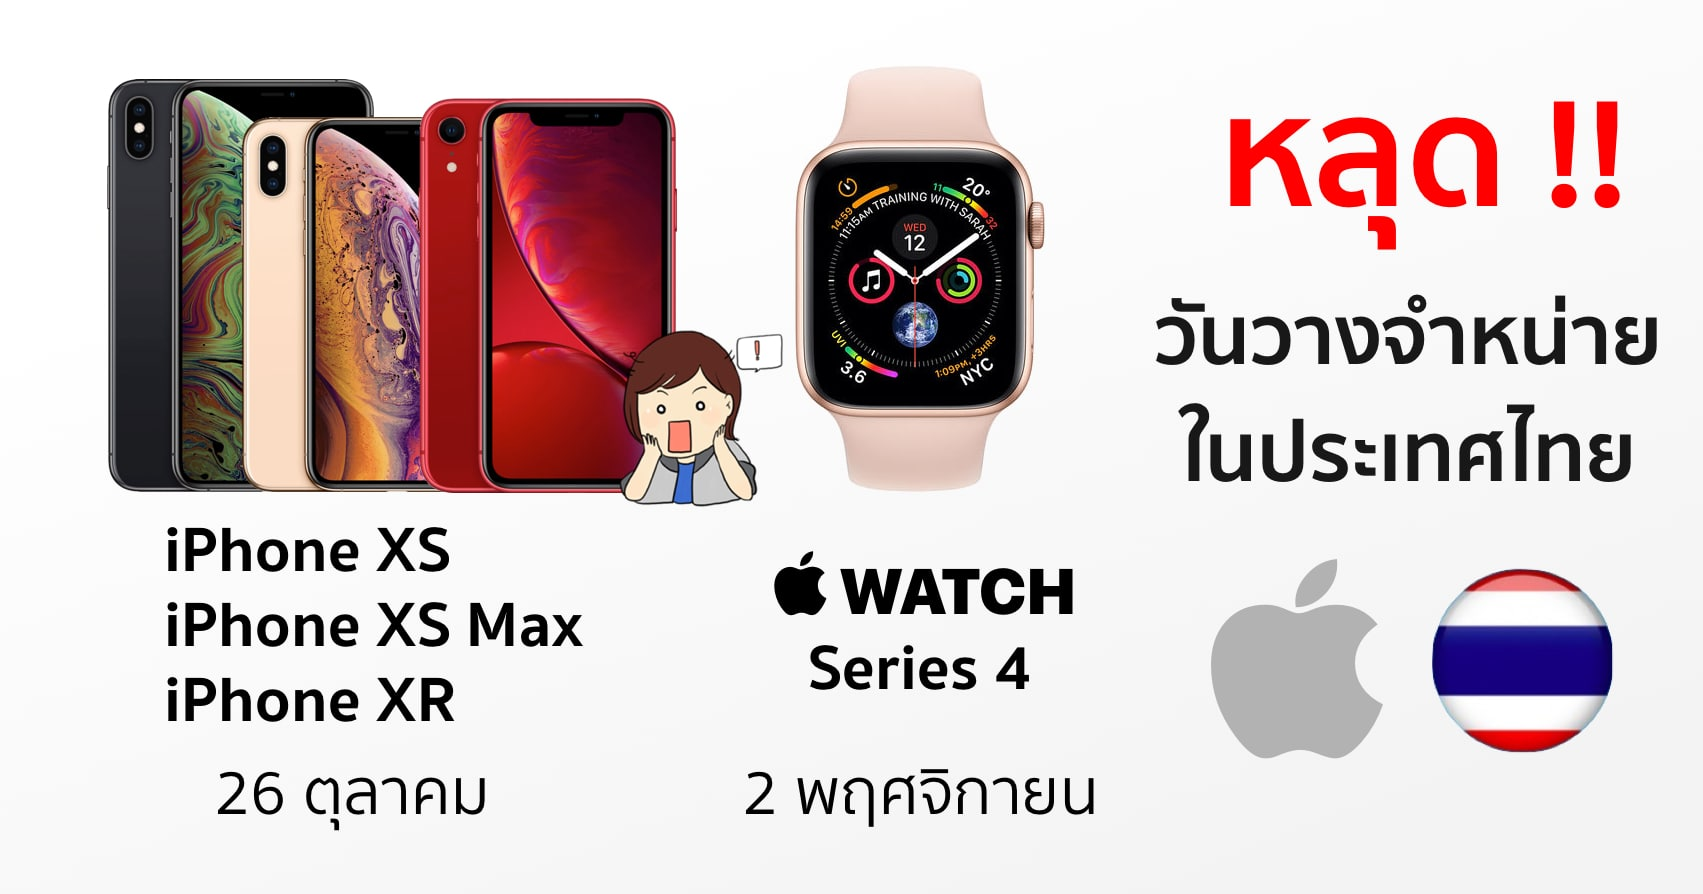 rumors-launch-iphone-xs-max-xr-apple-watch-series-4-thailand-1